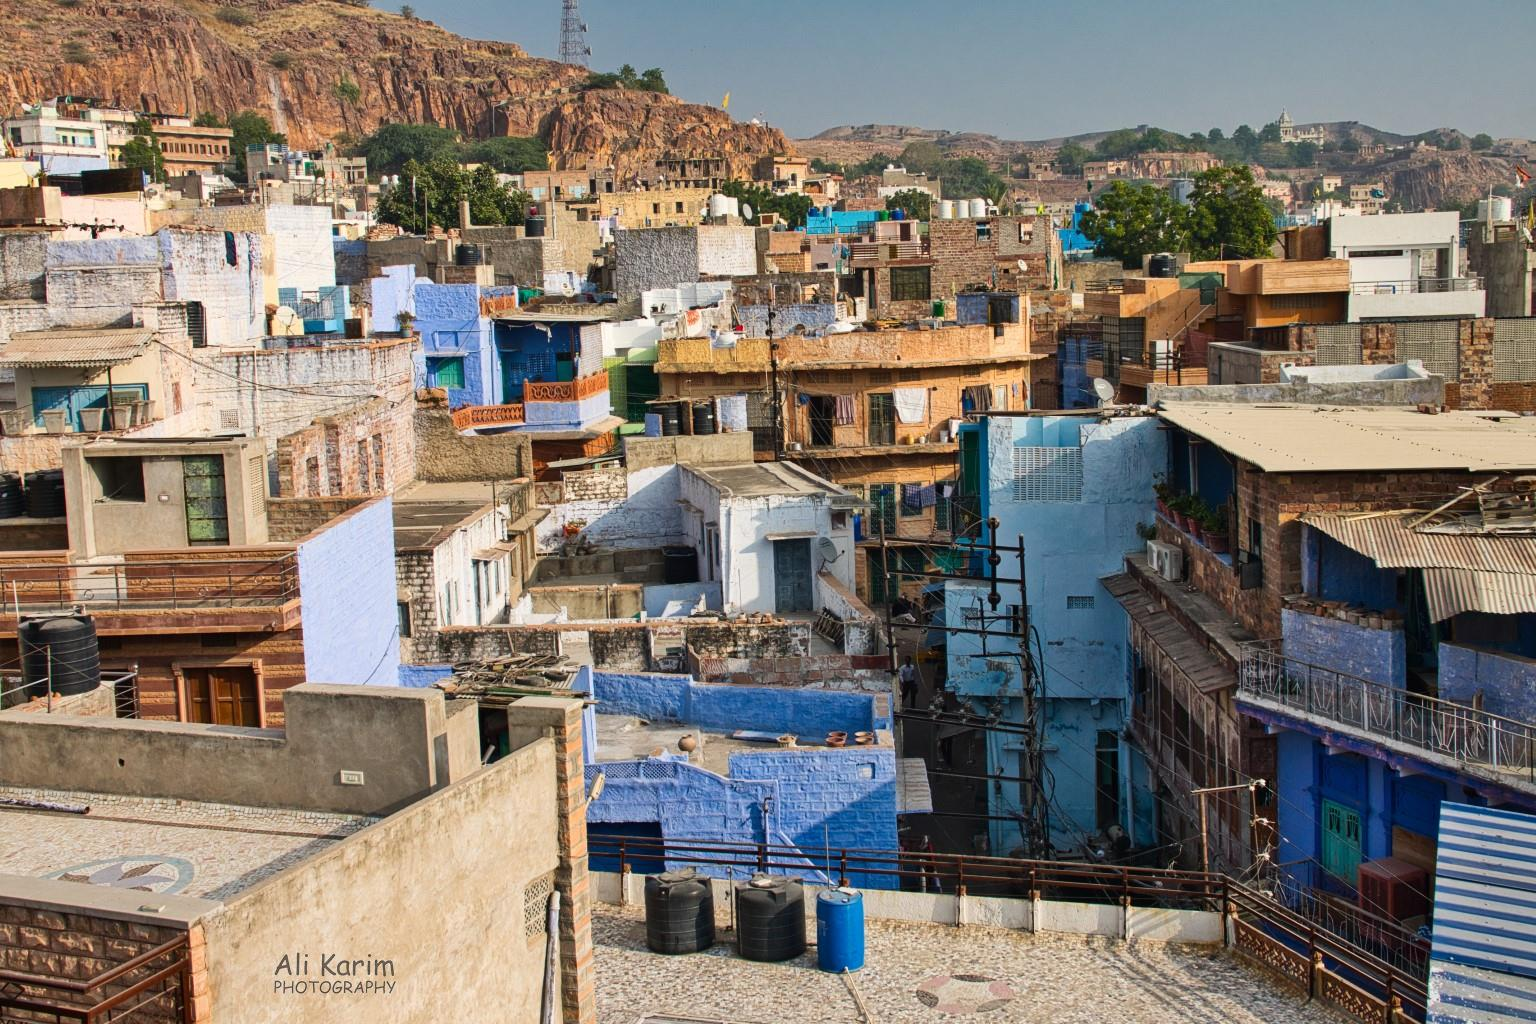 Jodhpur, Rajasthan View of the busy old city